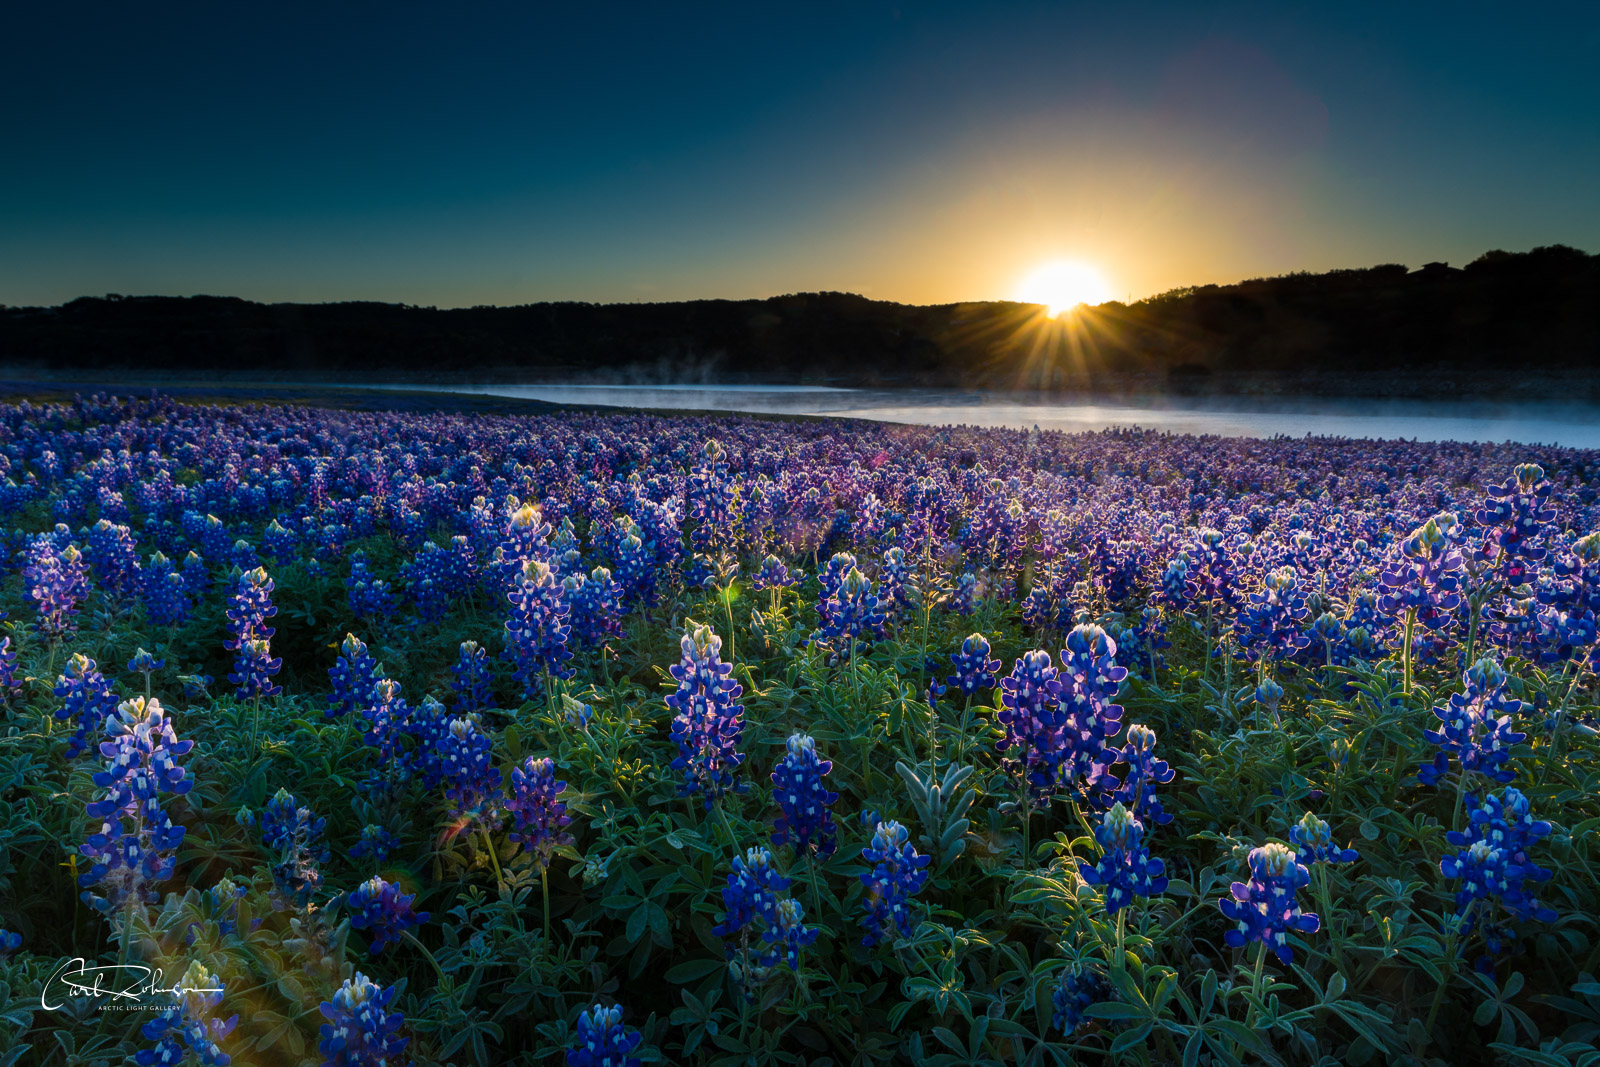 First light of the day shines through a field of bluebonnets alongside the lower Colorado River near Marble Falls, Texas.